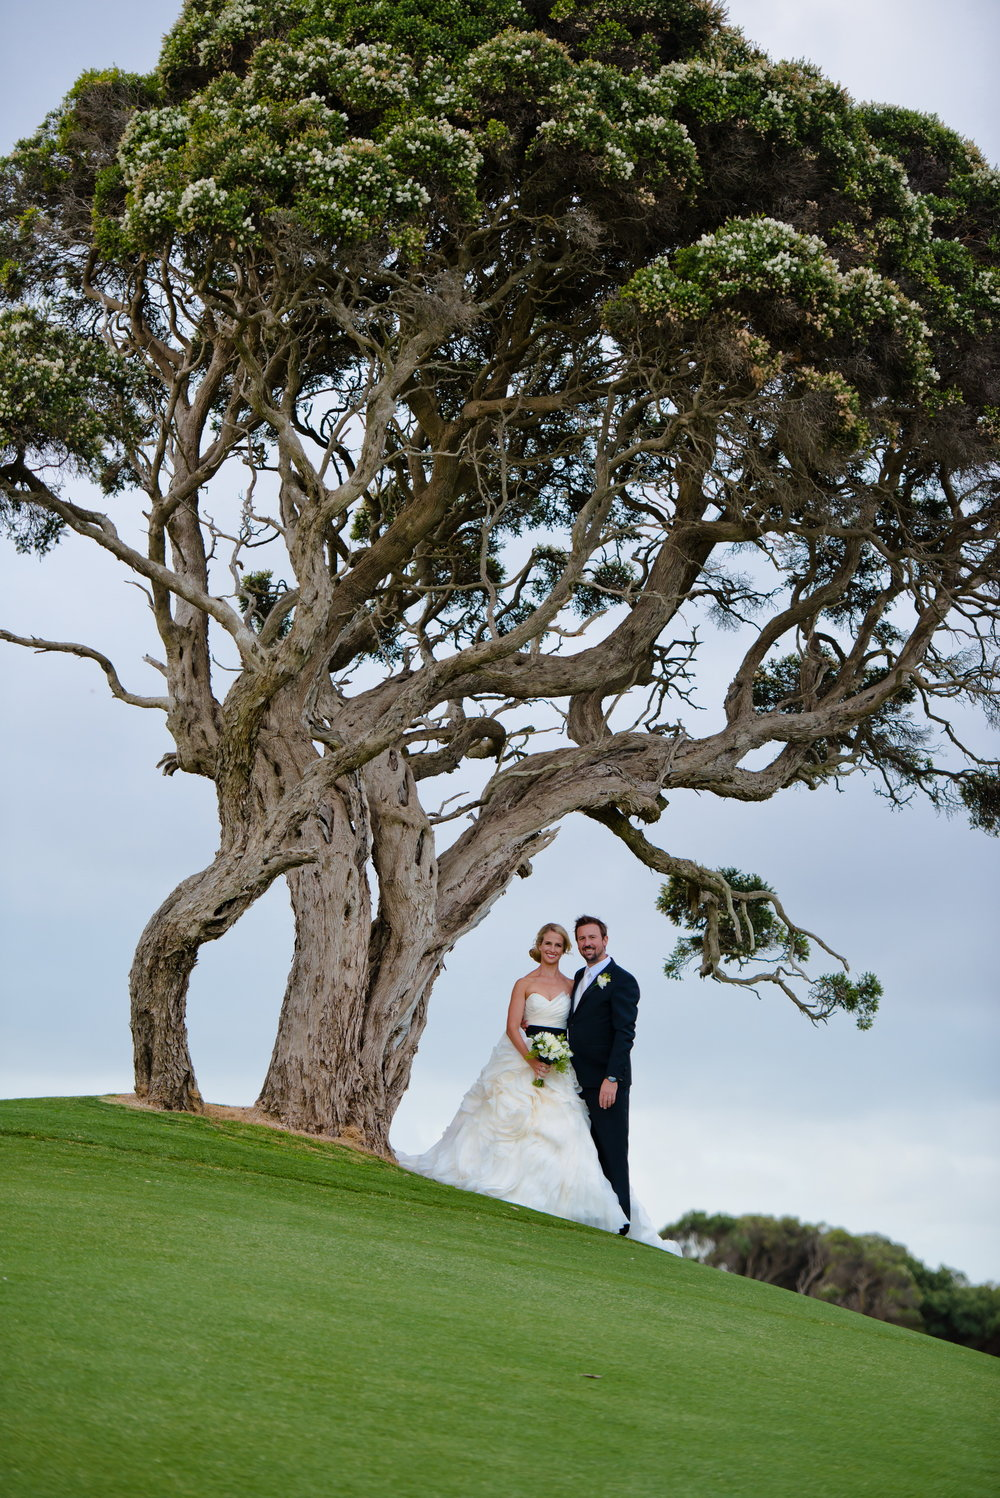 Cape shanck National golf course wedding